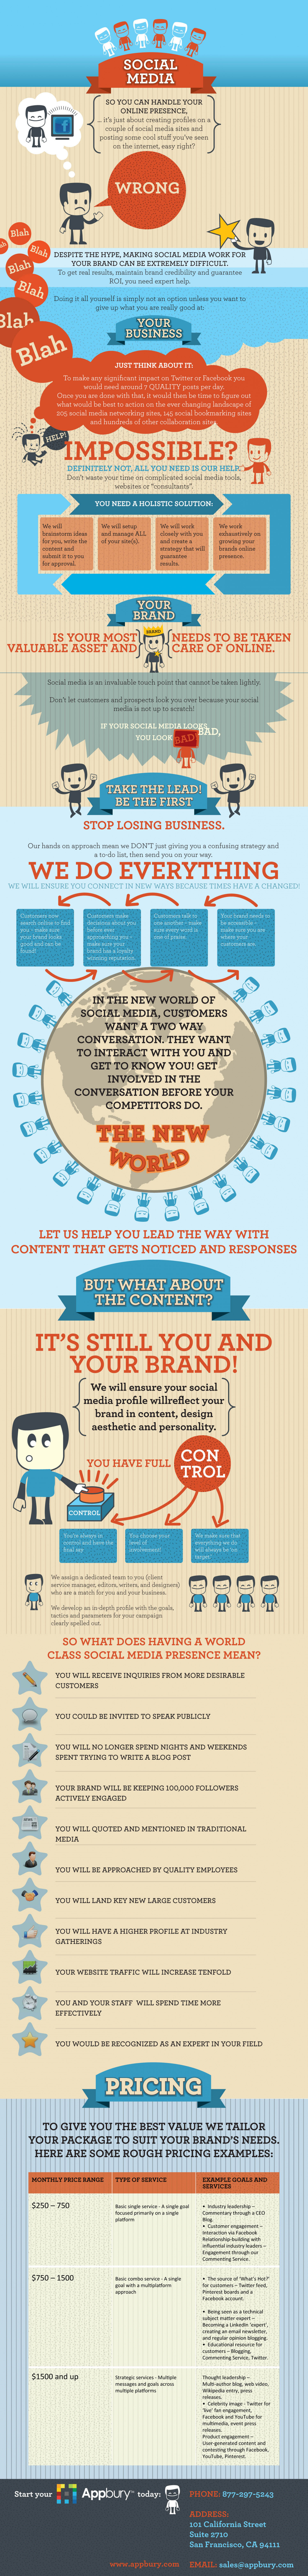 Social Media: So you can handle your online presence  Infographic